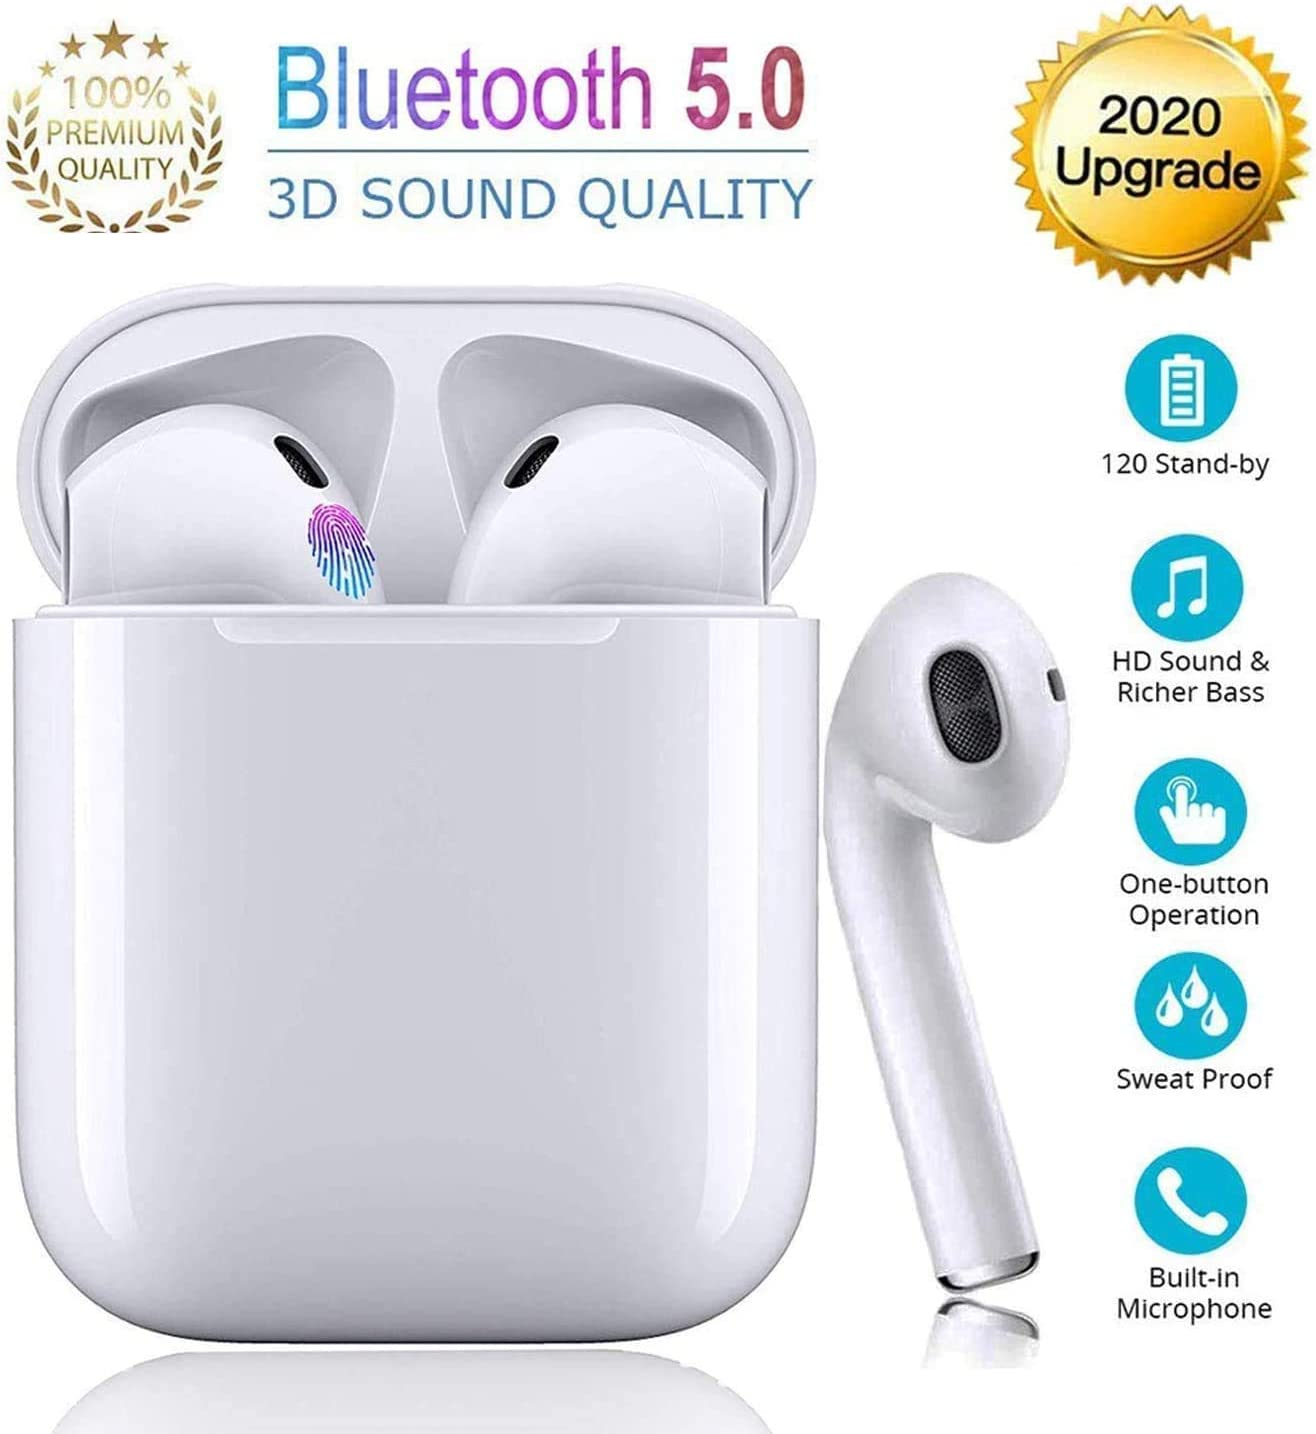 Auriculares inalámbricos Bluetooth,Estéreo In-Ear, Conveniente estuche de carga, Wireless Earbuds Deportivos Headsets con Micrófono Reducción de Ruido Cascos para iPhone/iPas/Android/AirPods/Huawei